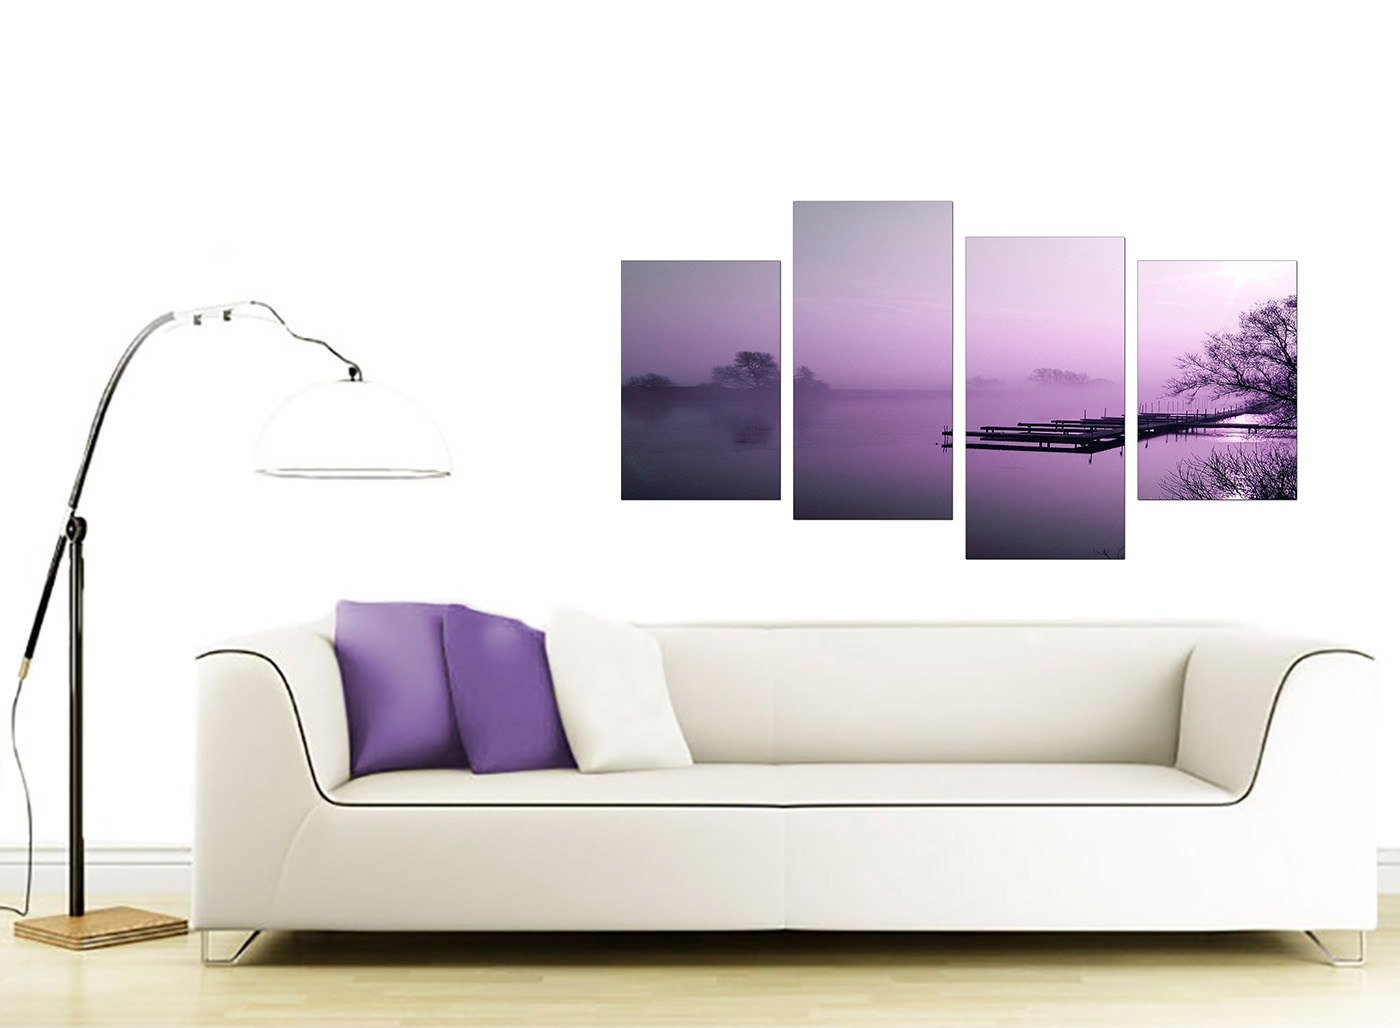 duckdns size master livings room x wall ideas home for art design arts overall canvas ikea org bedroom living